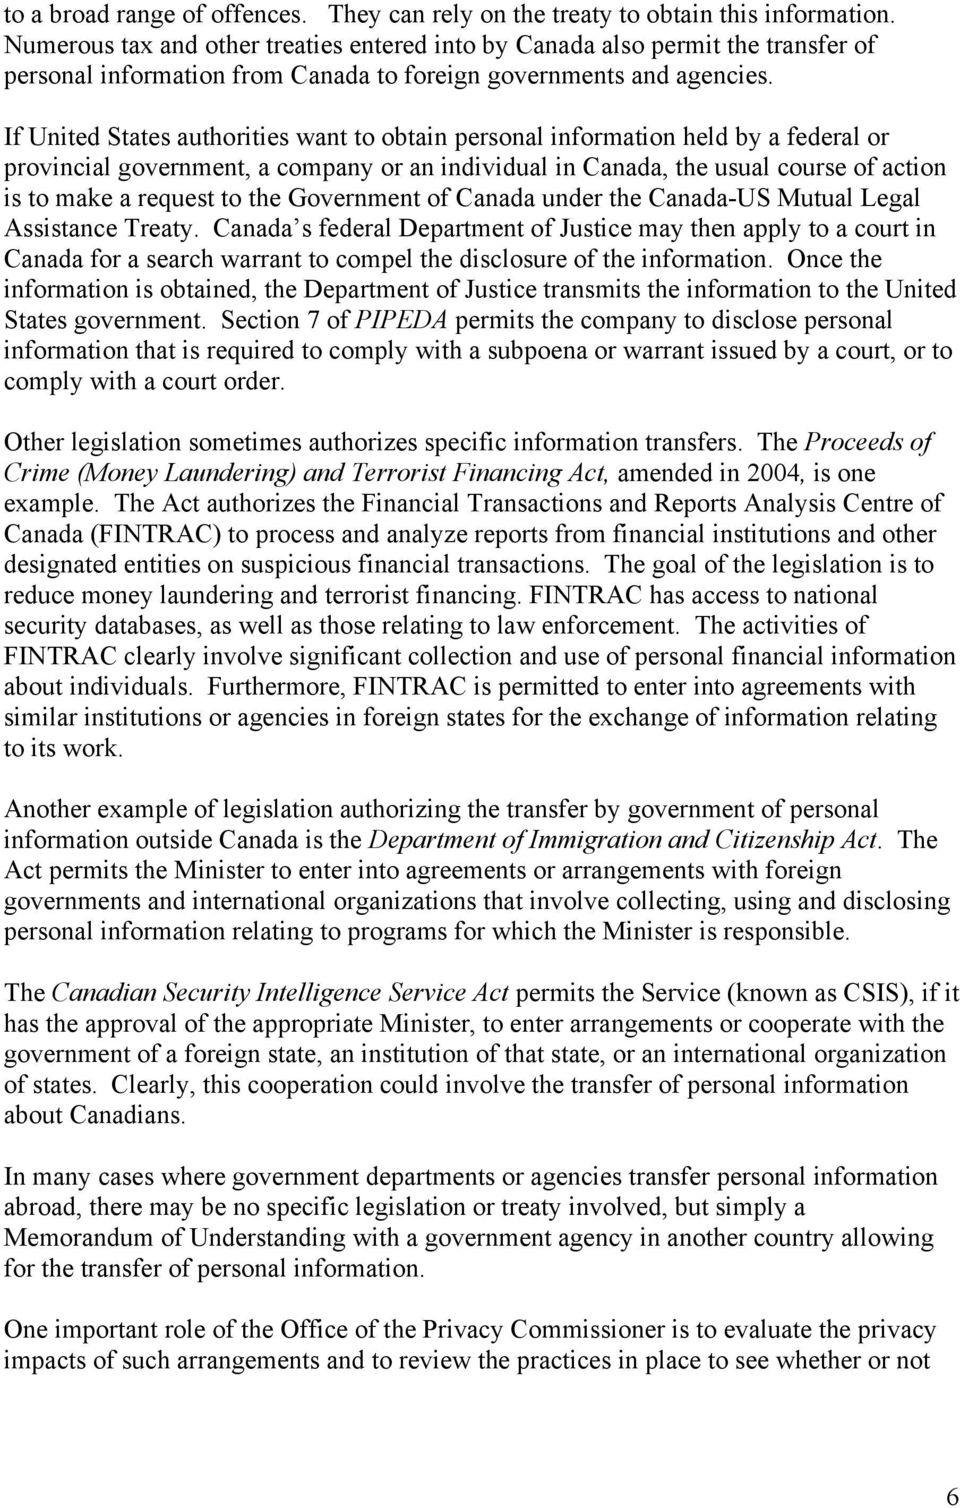 If United States authorities want to obtain personal information held by a federal or provincial government, a company or an individual in Canada, the usual course of action is to make a request to